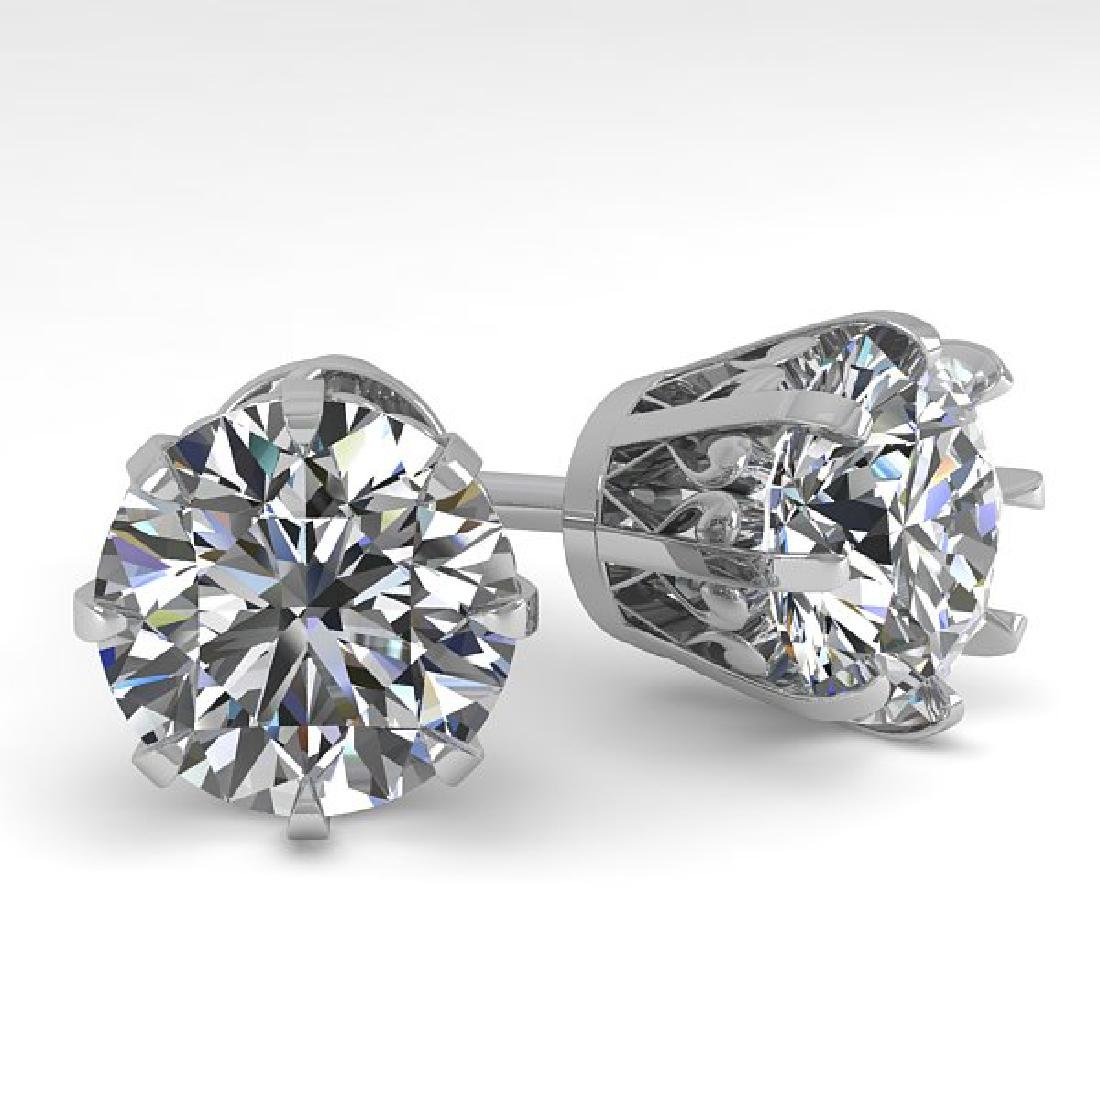 4.0 CTW VS/SI Diamond Stud Solitaire Earrings 14K White